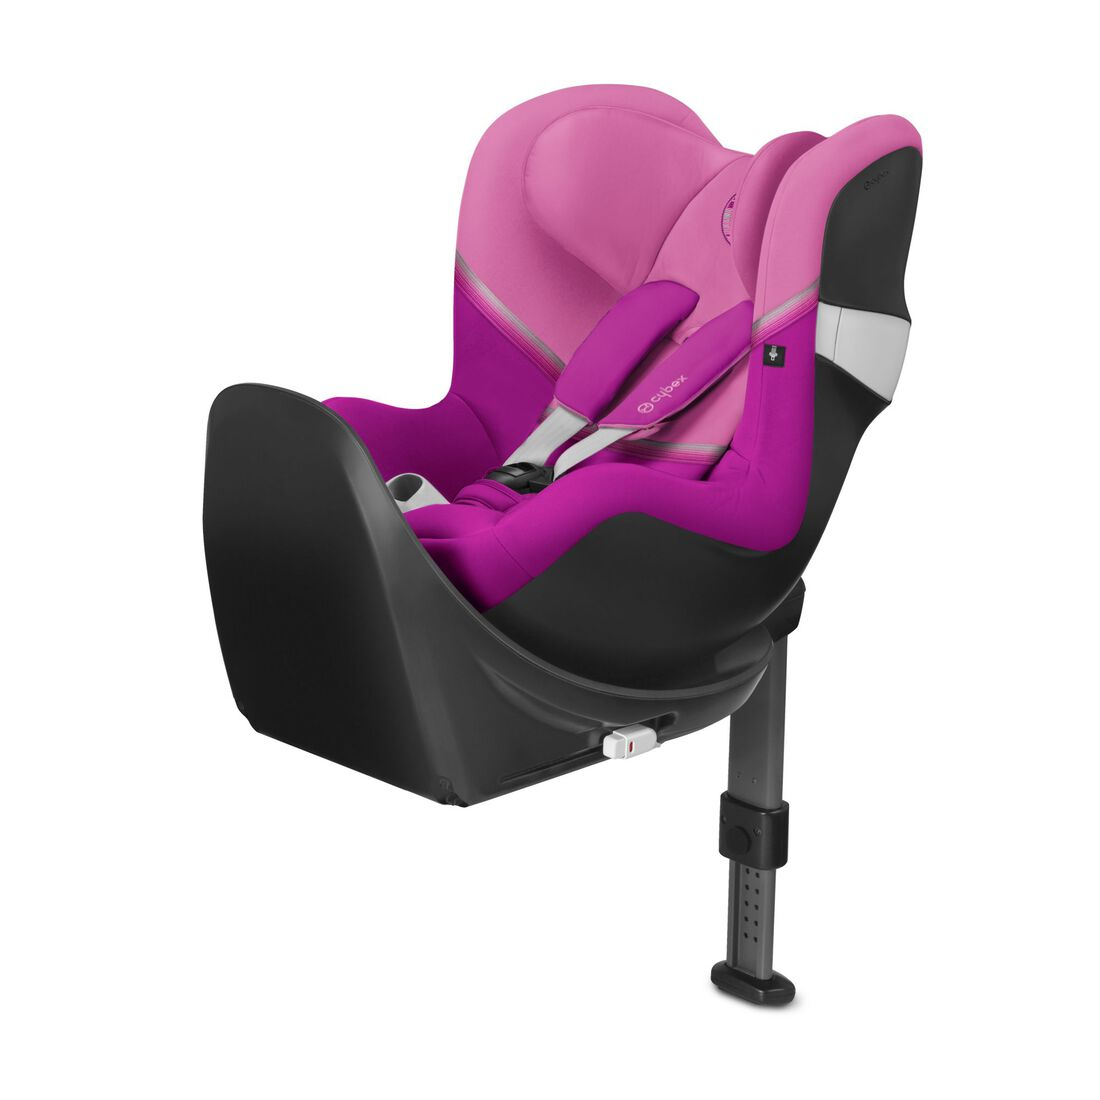 CYBEX Sirona M2 i-Size - Magnolia Pink in Magnolia Pink large image number 2